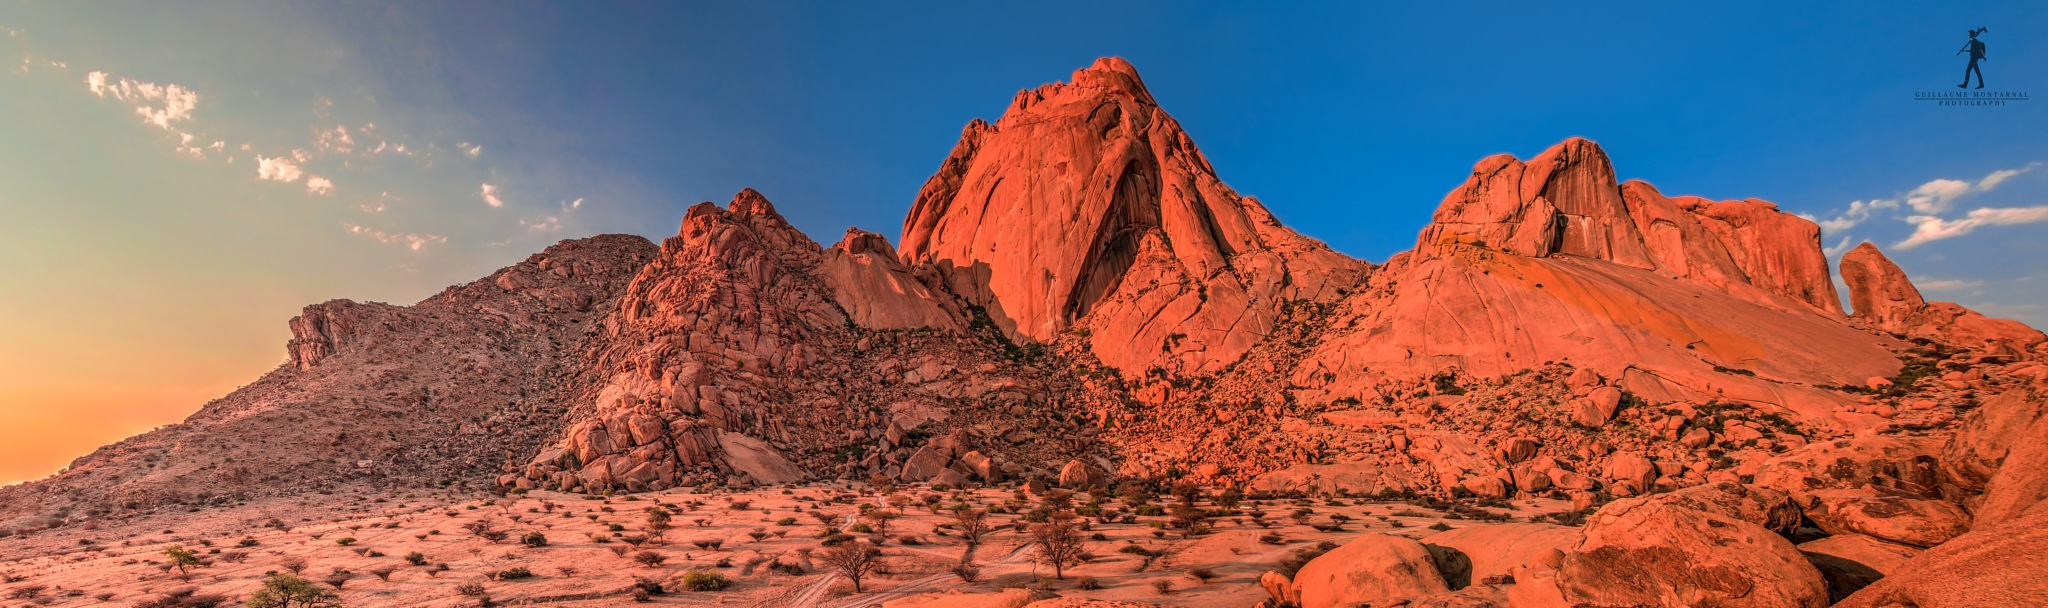 Spitzkoppe - Namibia by guillaumemontarnal